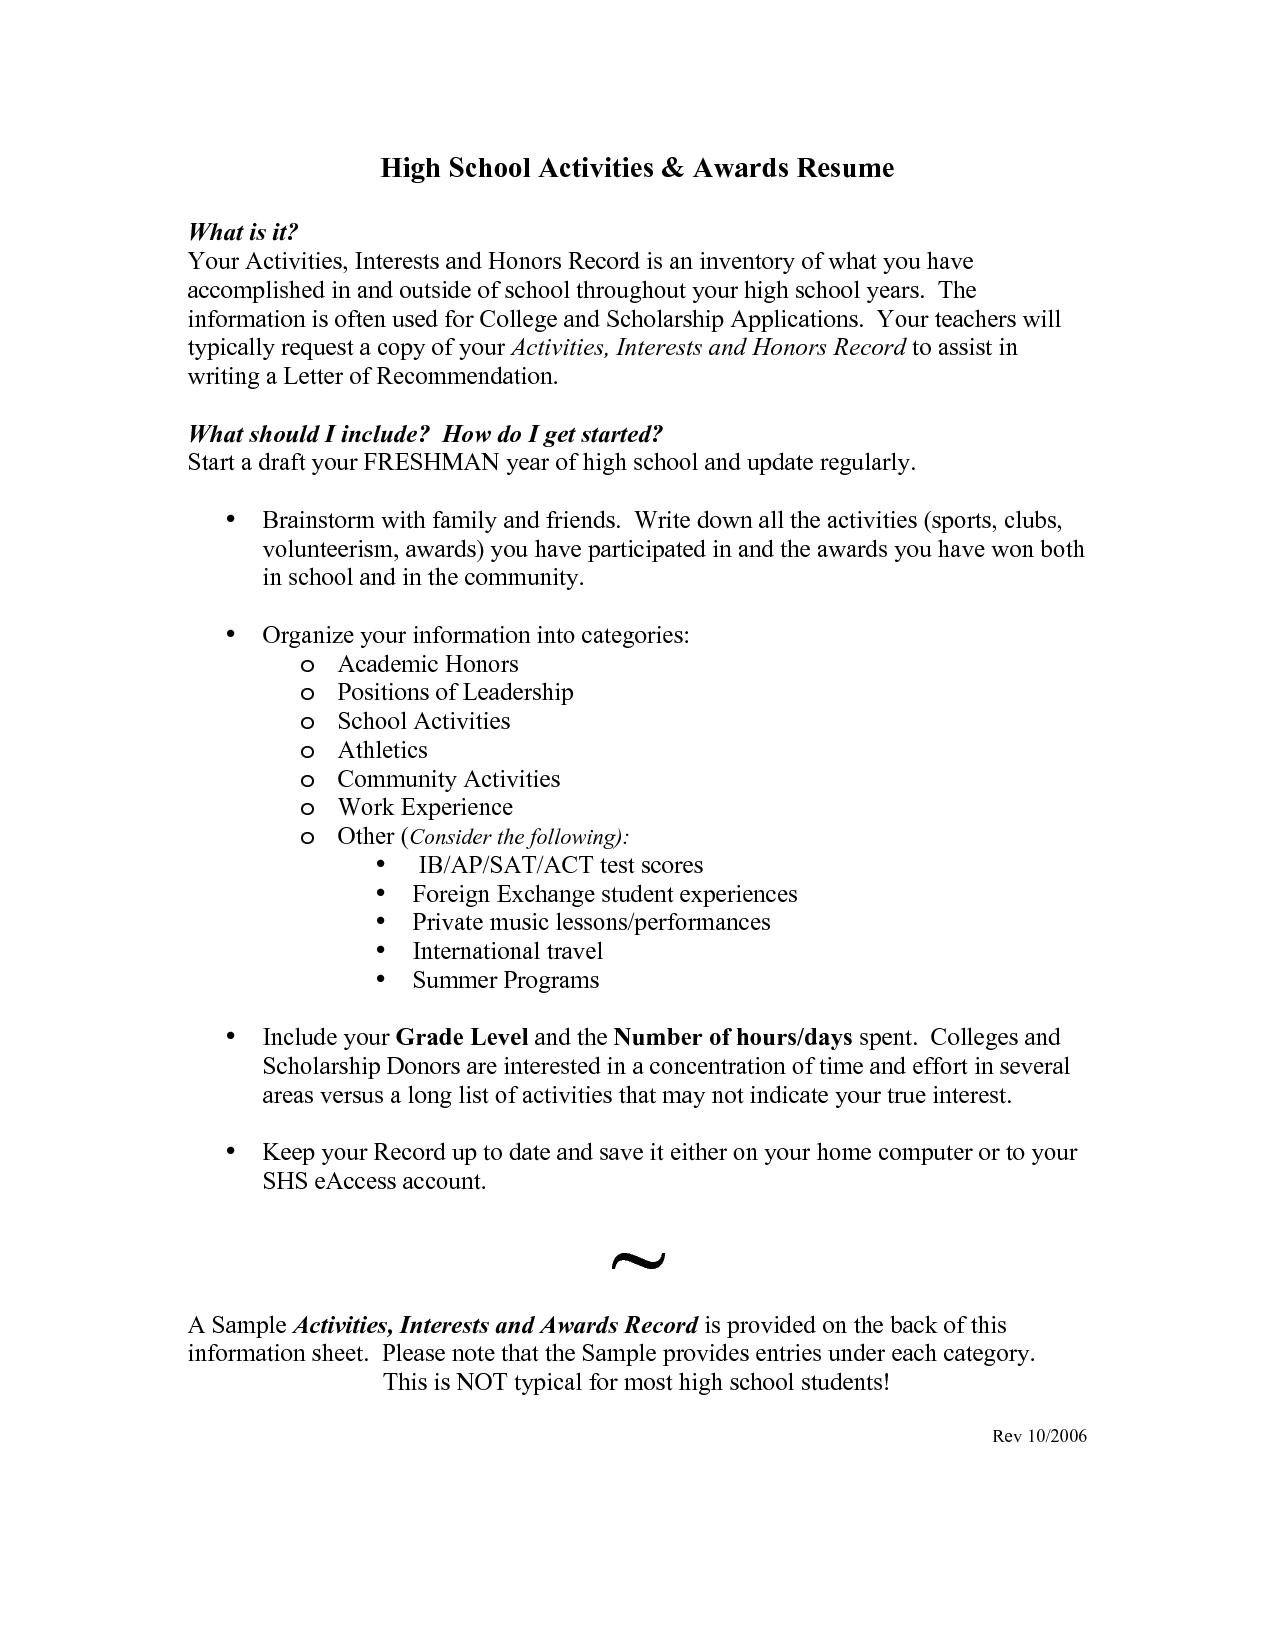 example resume for high school student for college applications        resume2016zone com